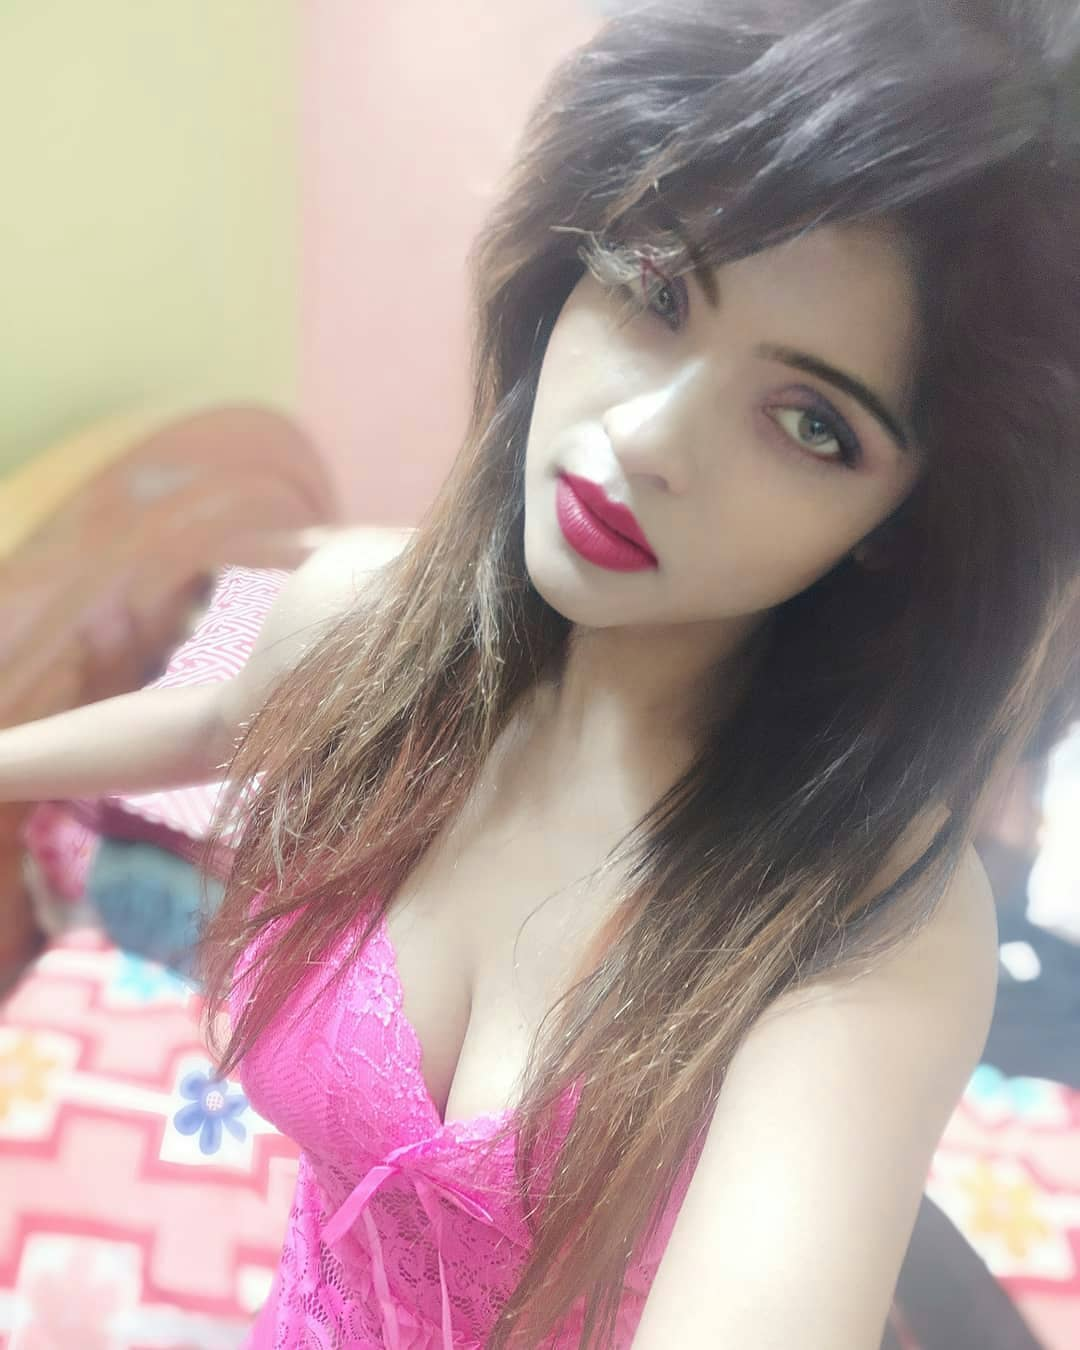 call girl in goa, call girl in south goa, call girl in calangute beach, call girl in baga beach, call girl in candolim beach, call girl in anjuna beach, call girl in arpora, call girl in panjim, call girl in miramar beach, call girl in north goa.